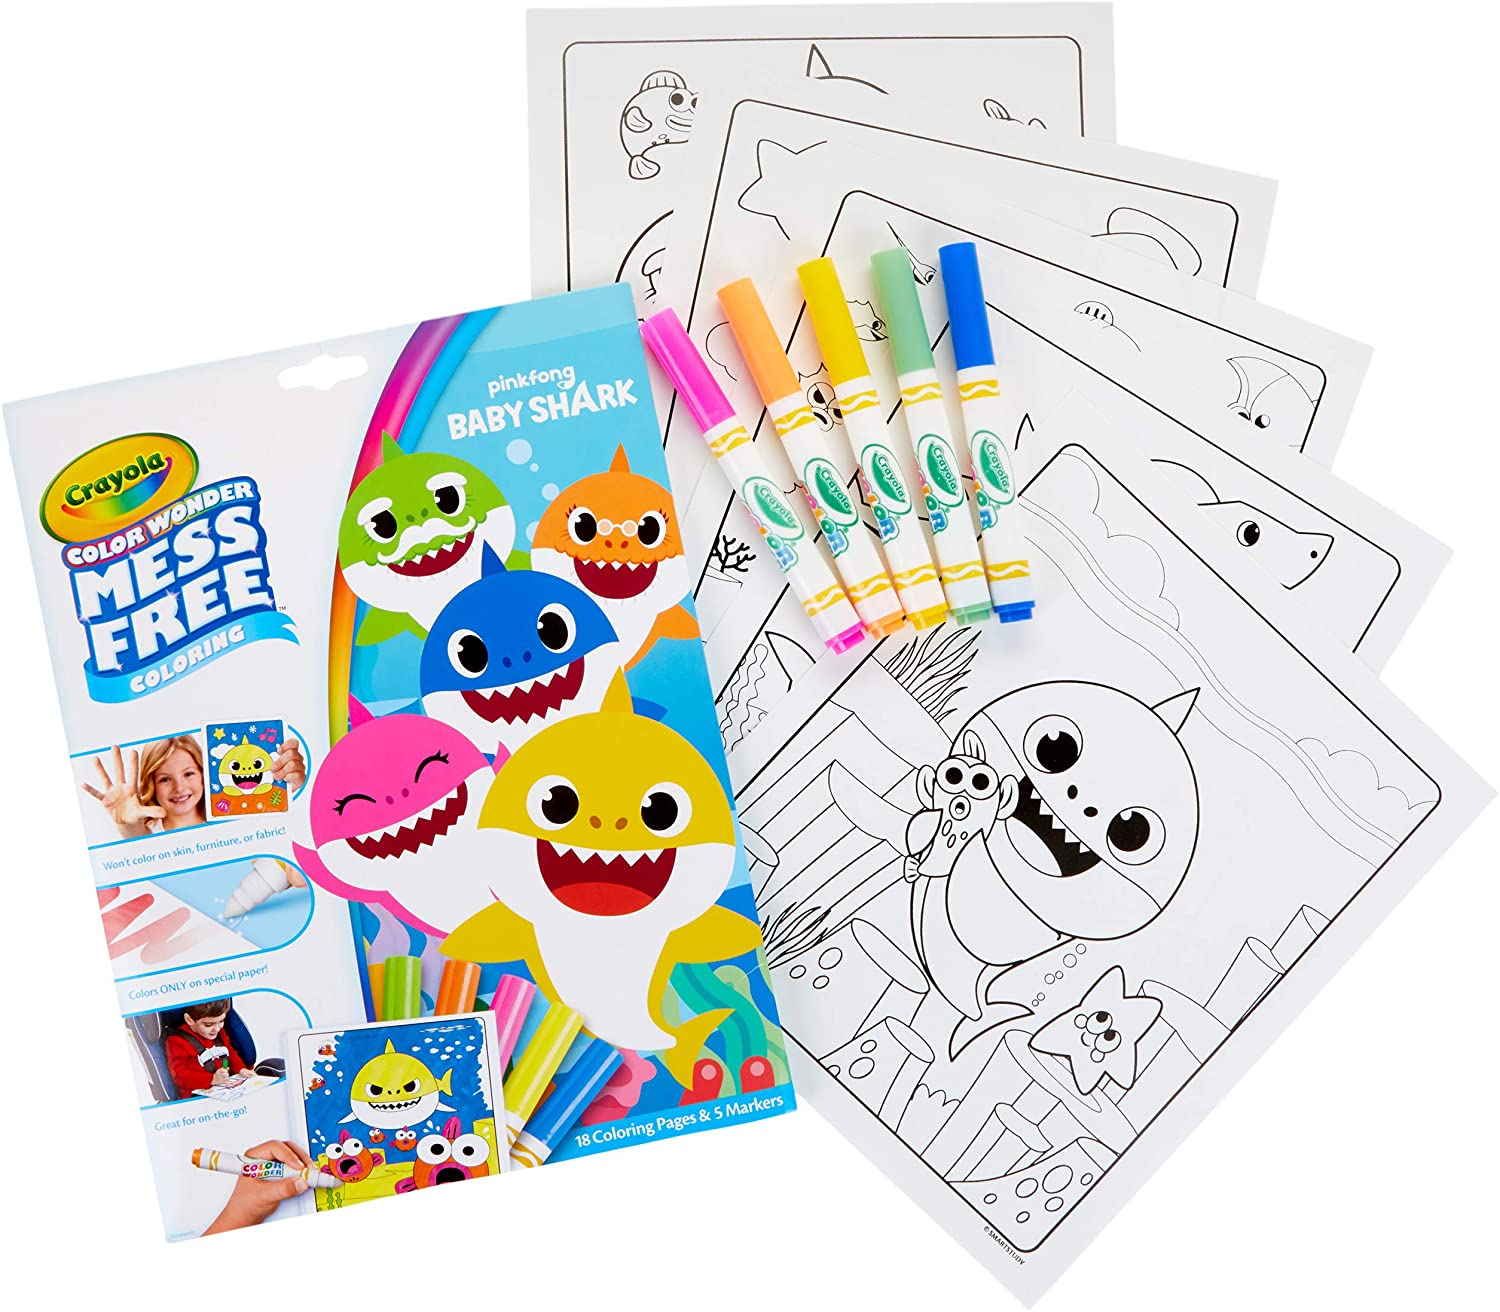 Amazon.com: Crayola Baby Shark Wonder Pages Mess Free Coloring Gift, Kids  Indoor Activities at Home: Toys & Games